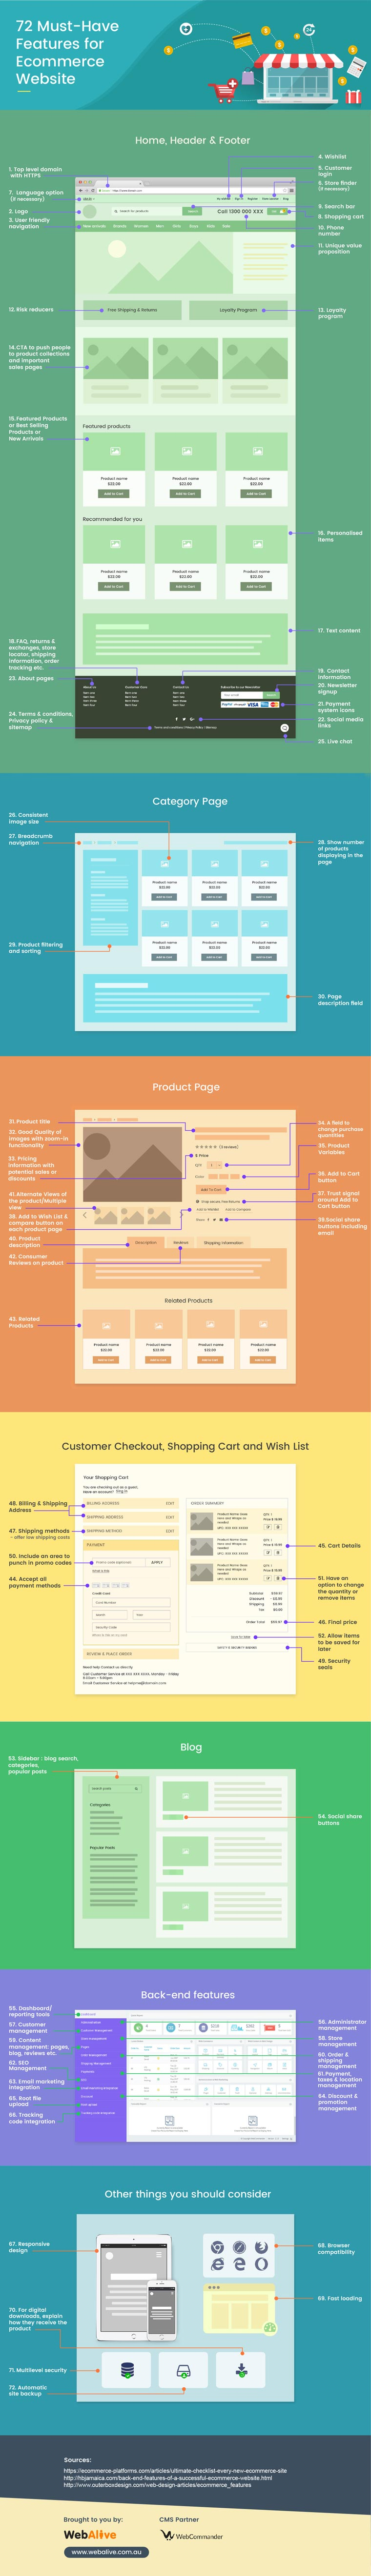 must have eCommerce features